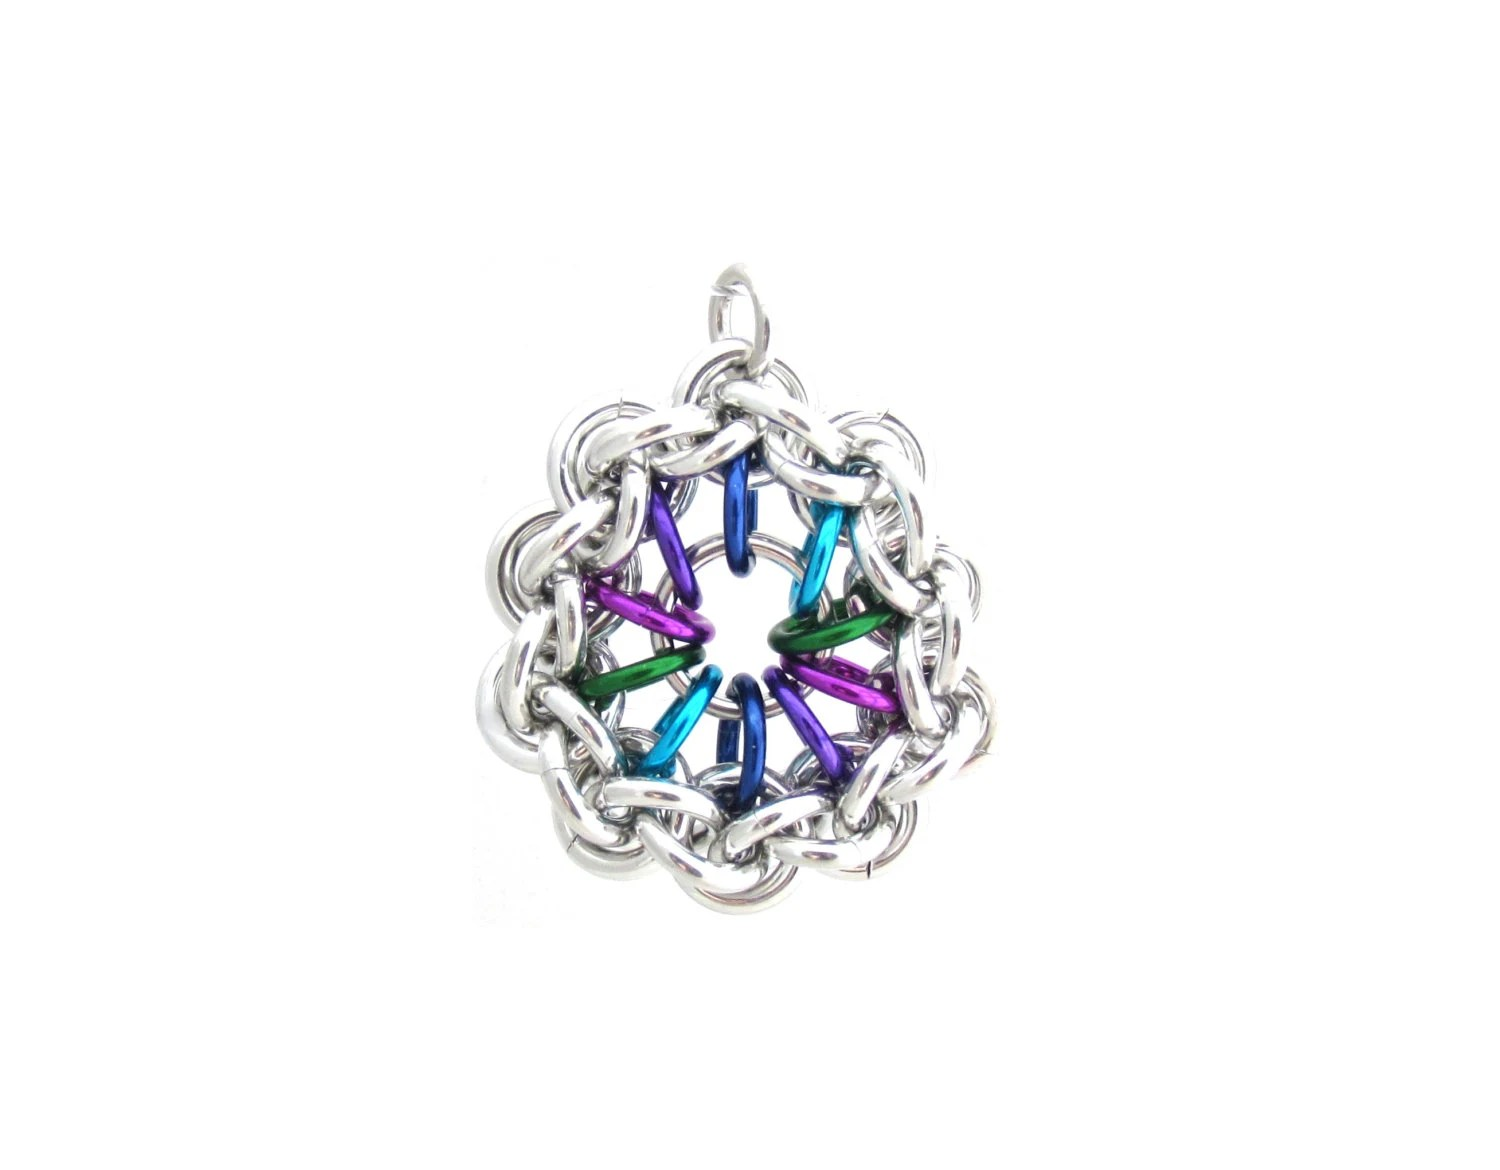 Jump Ring Pendant Chain Maille Jewelry Multicolor Jewelry